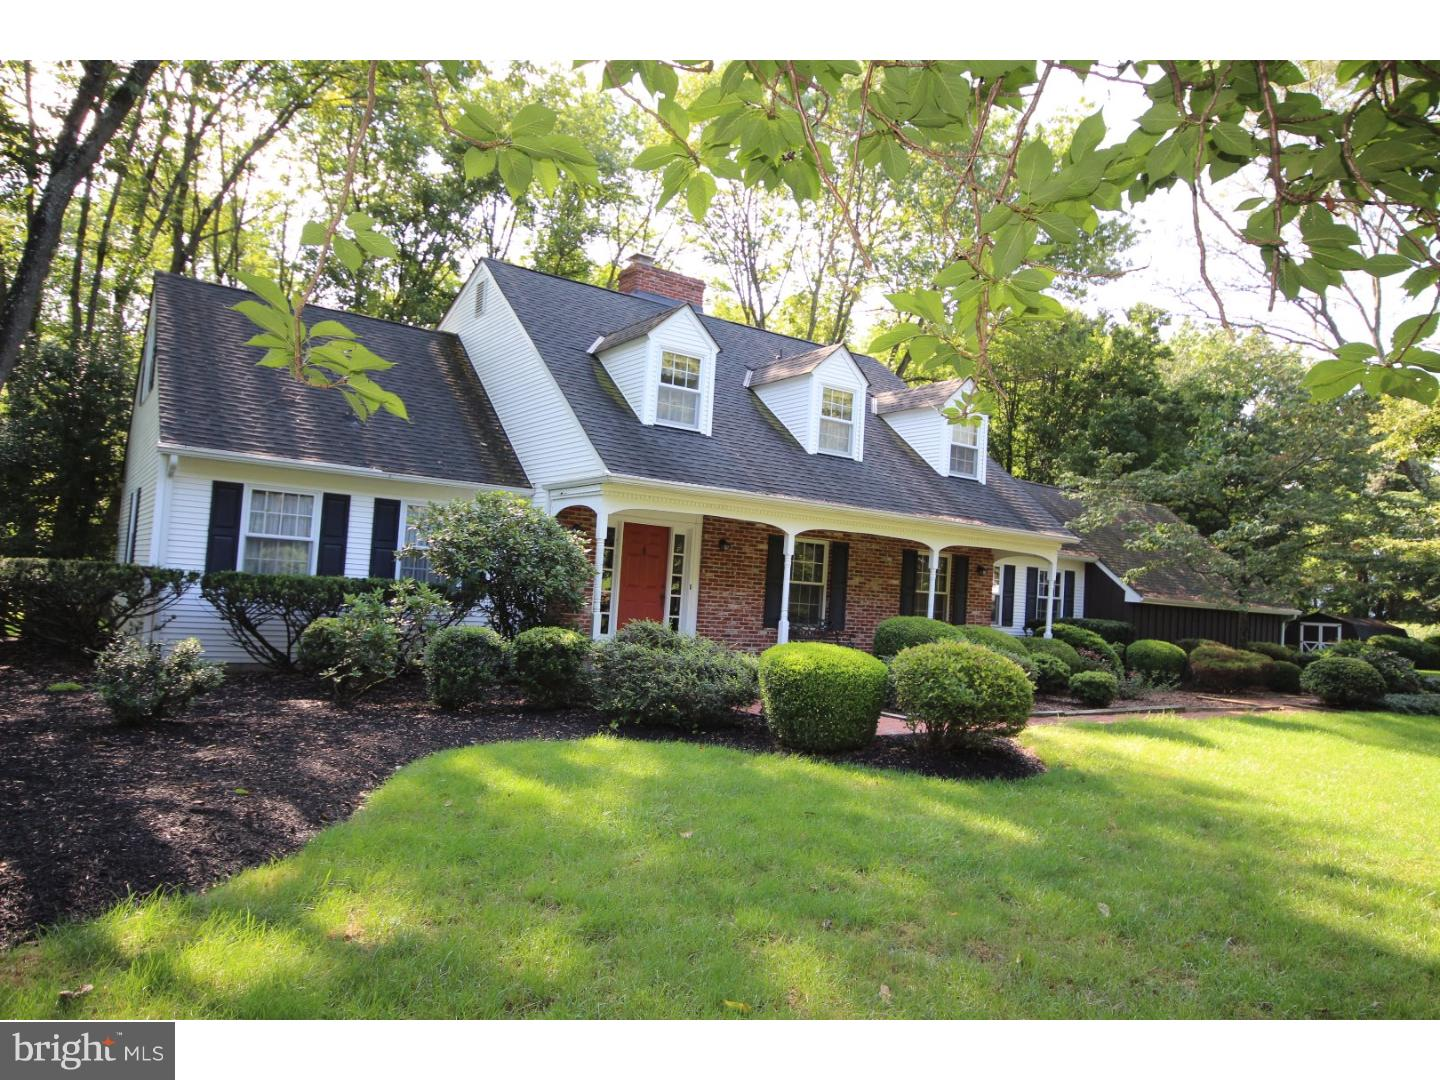 Property for Sale at 482 STONEYBROOK Road Newtown, Pennsylvania 18940 United States